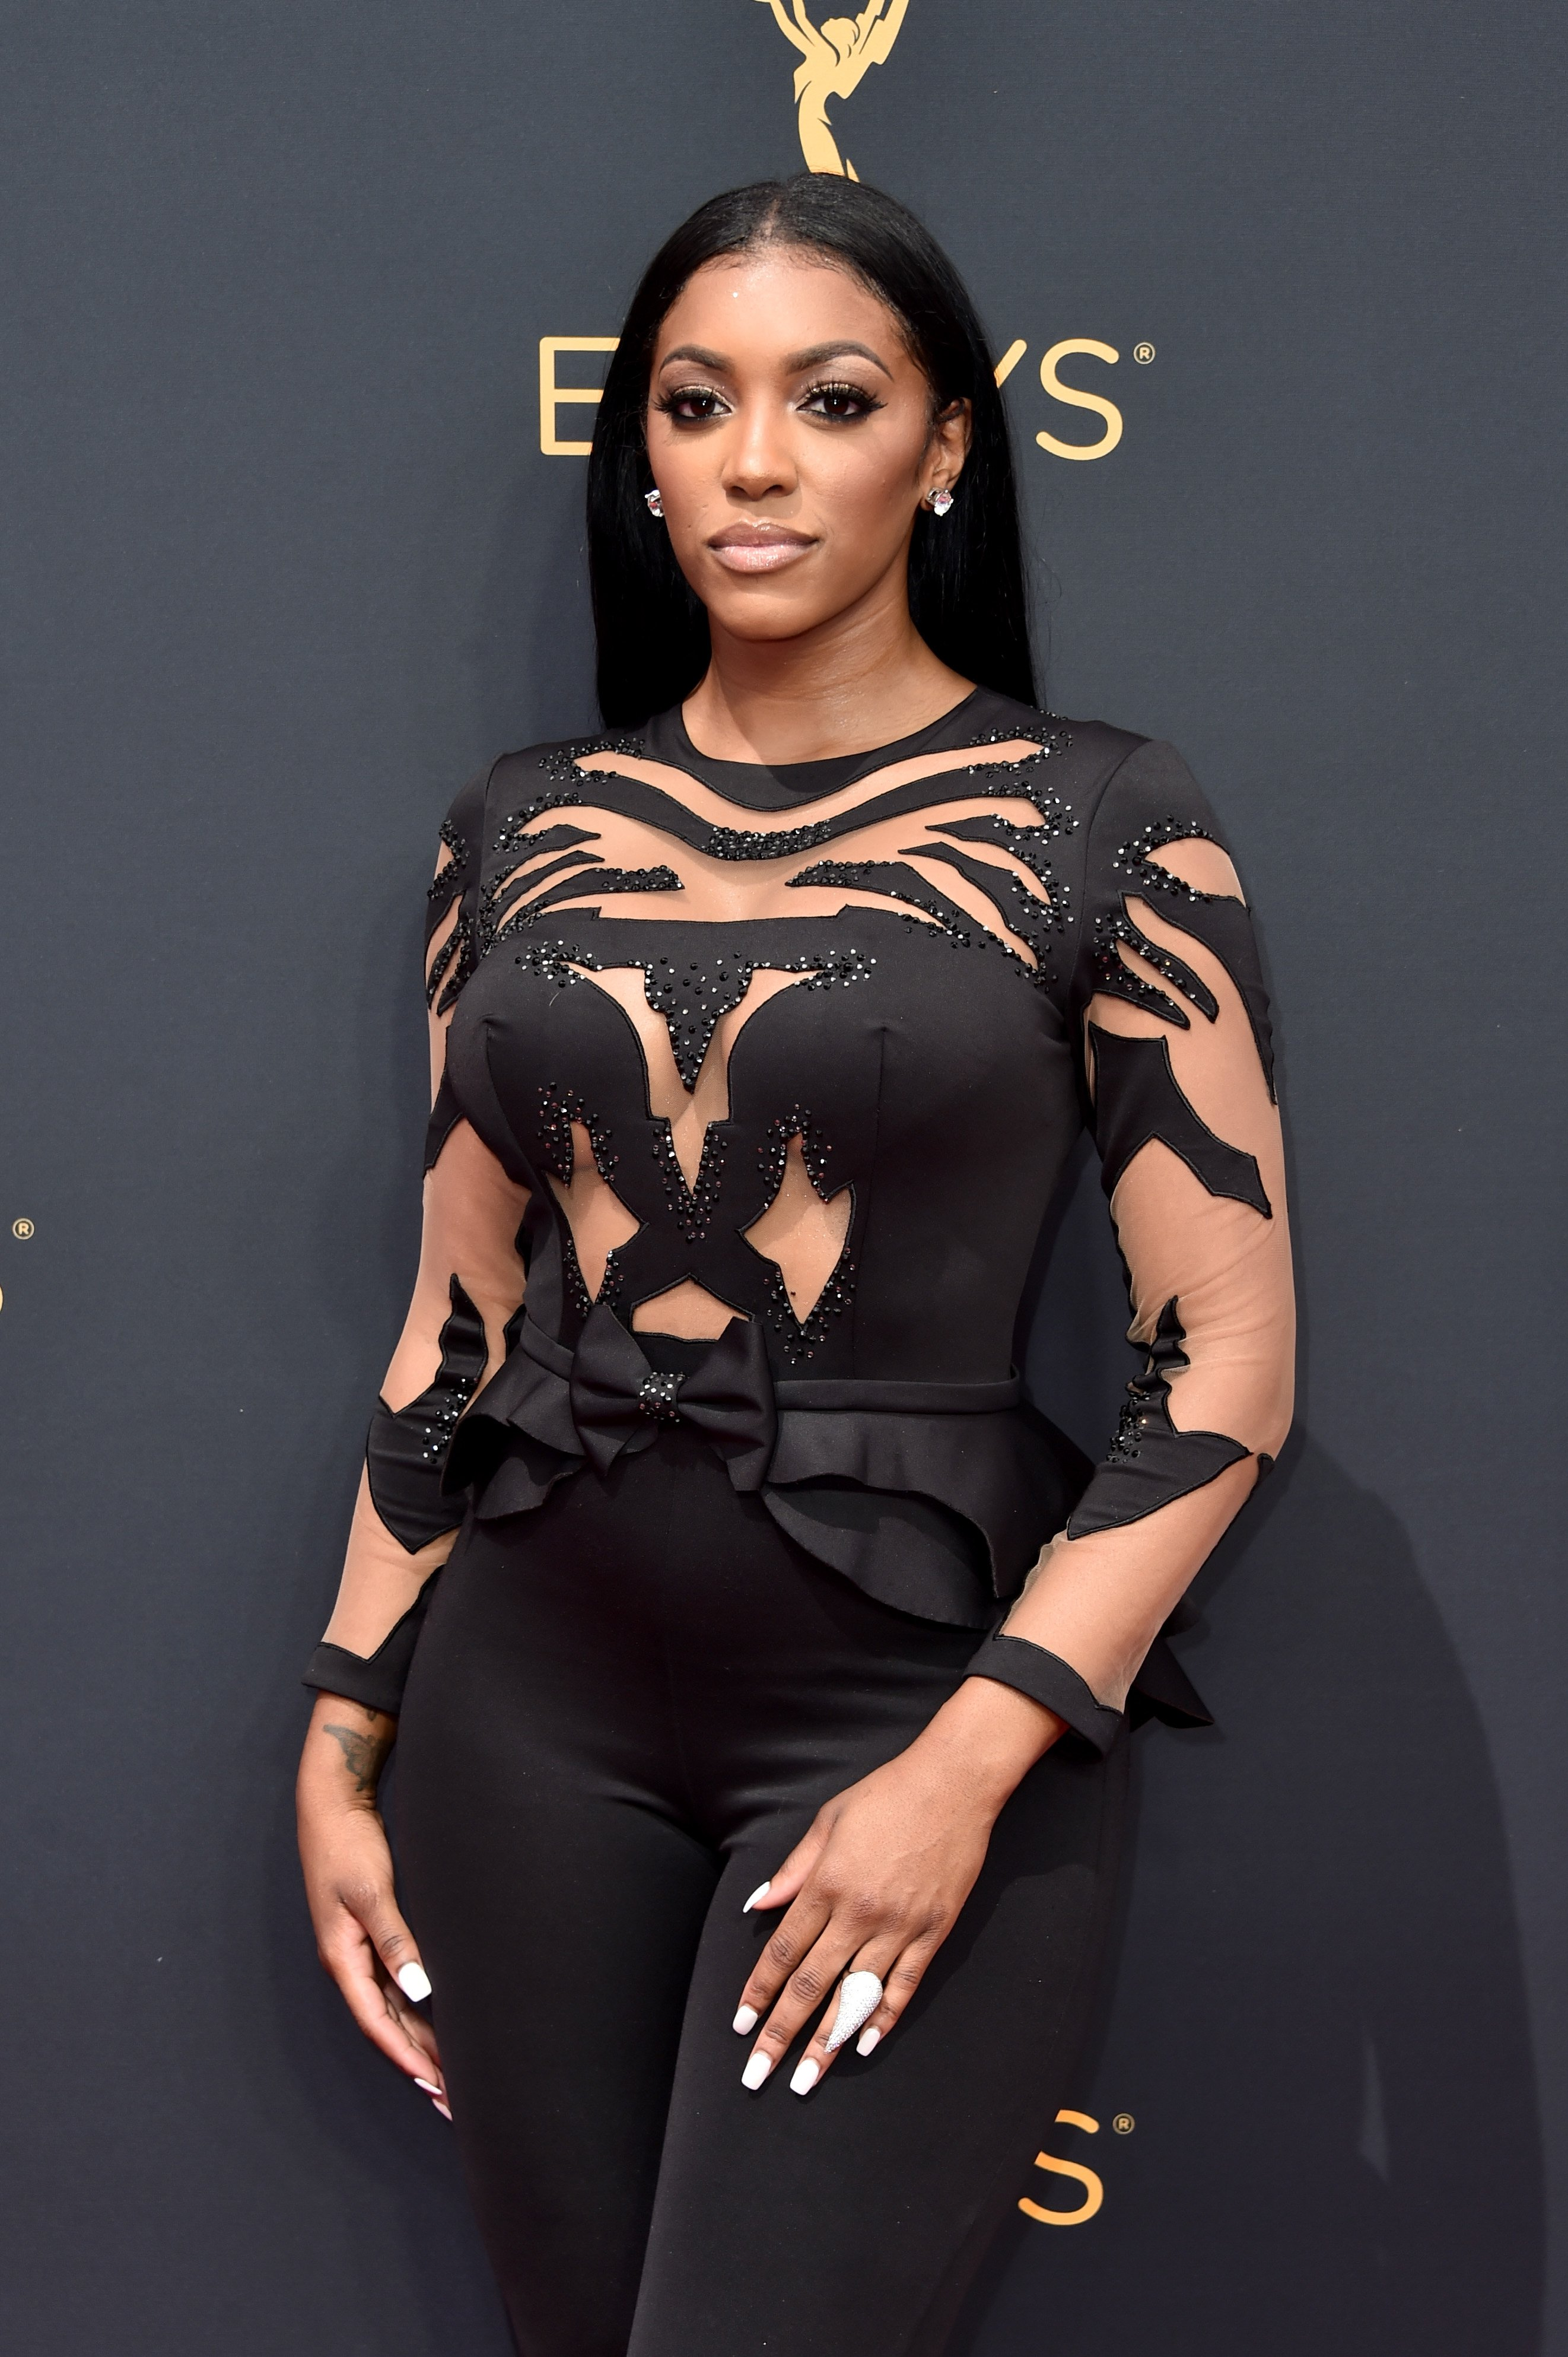 Porsha Williams attends the 68th Annual Primetime Emmy Awards at Microsoft Theater on September 18, 2016  | Photo: Getty Images